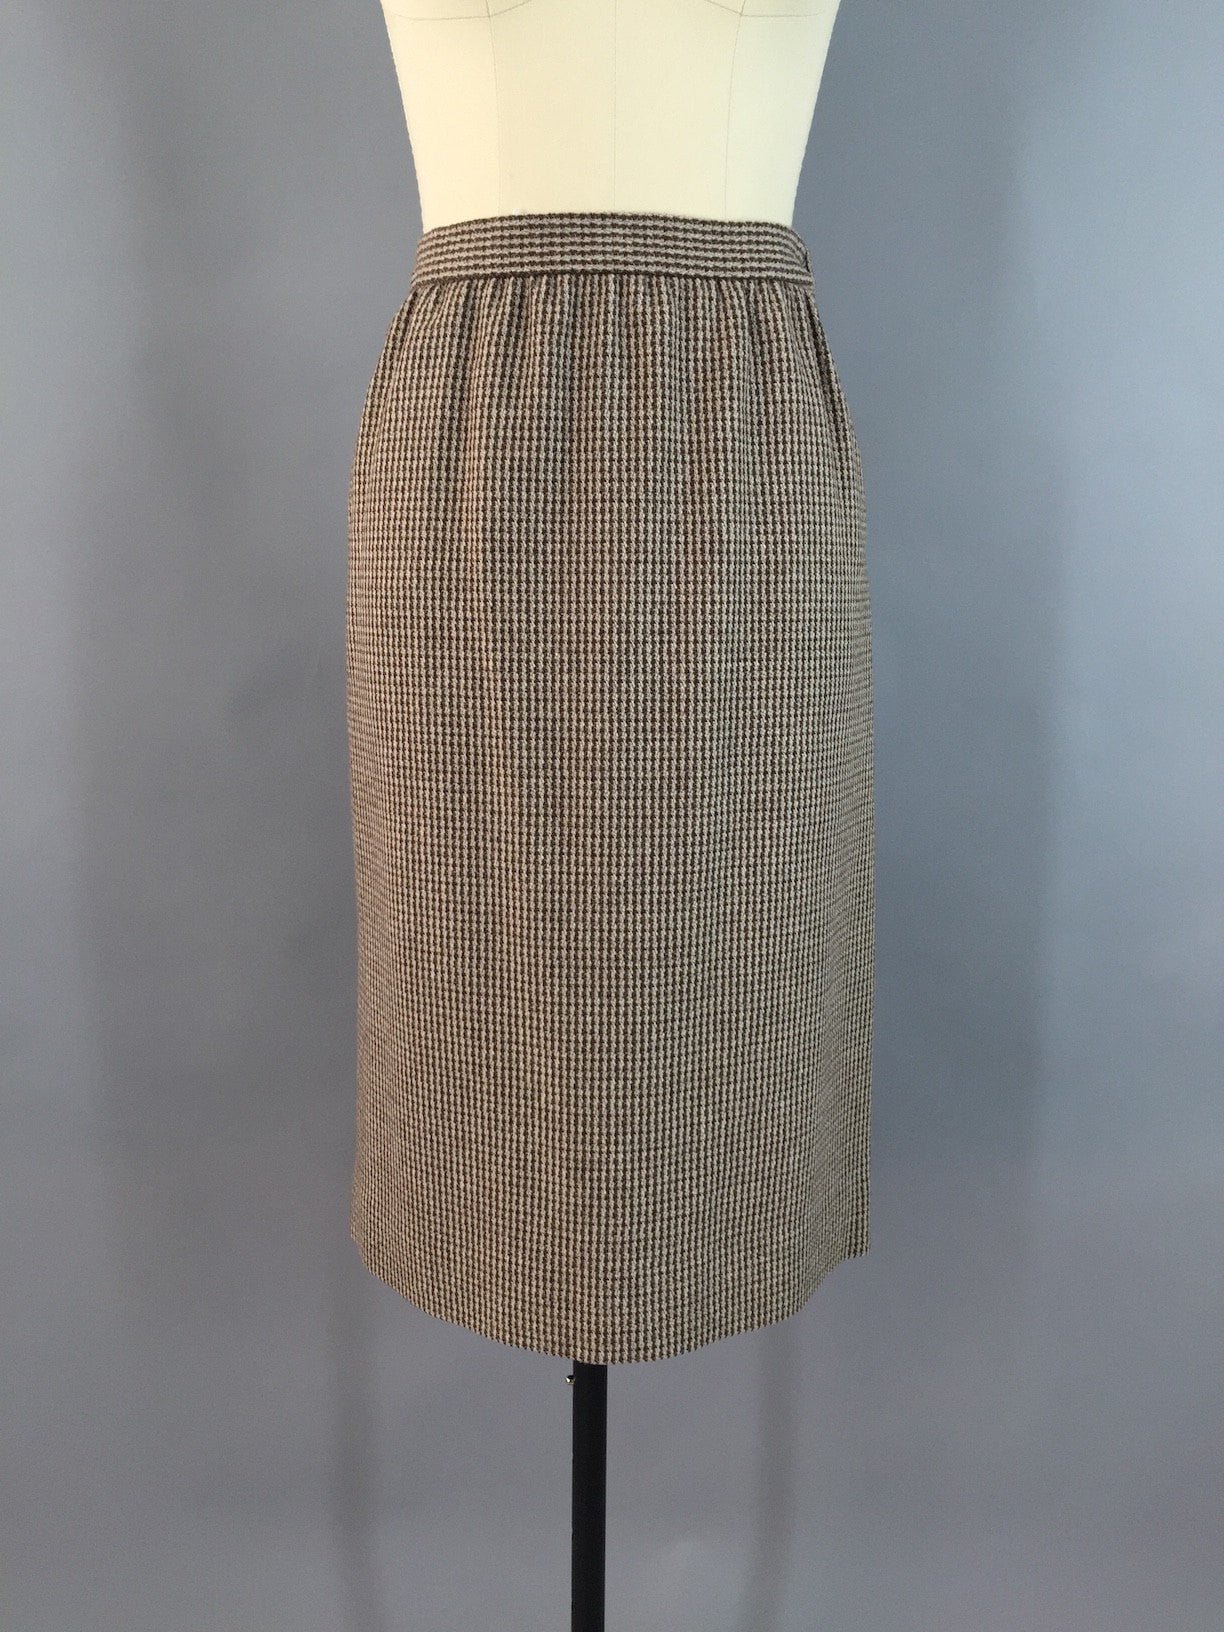 Vintage 1980s Brown Wool Tweed Pencil Skirt Bottoms ThisBlueBird - Sale